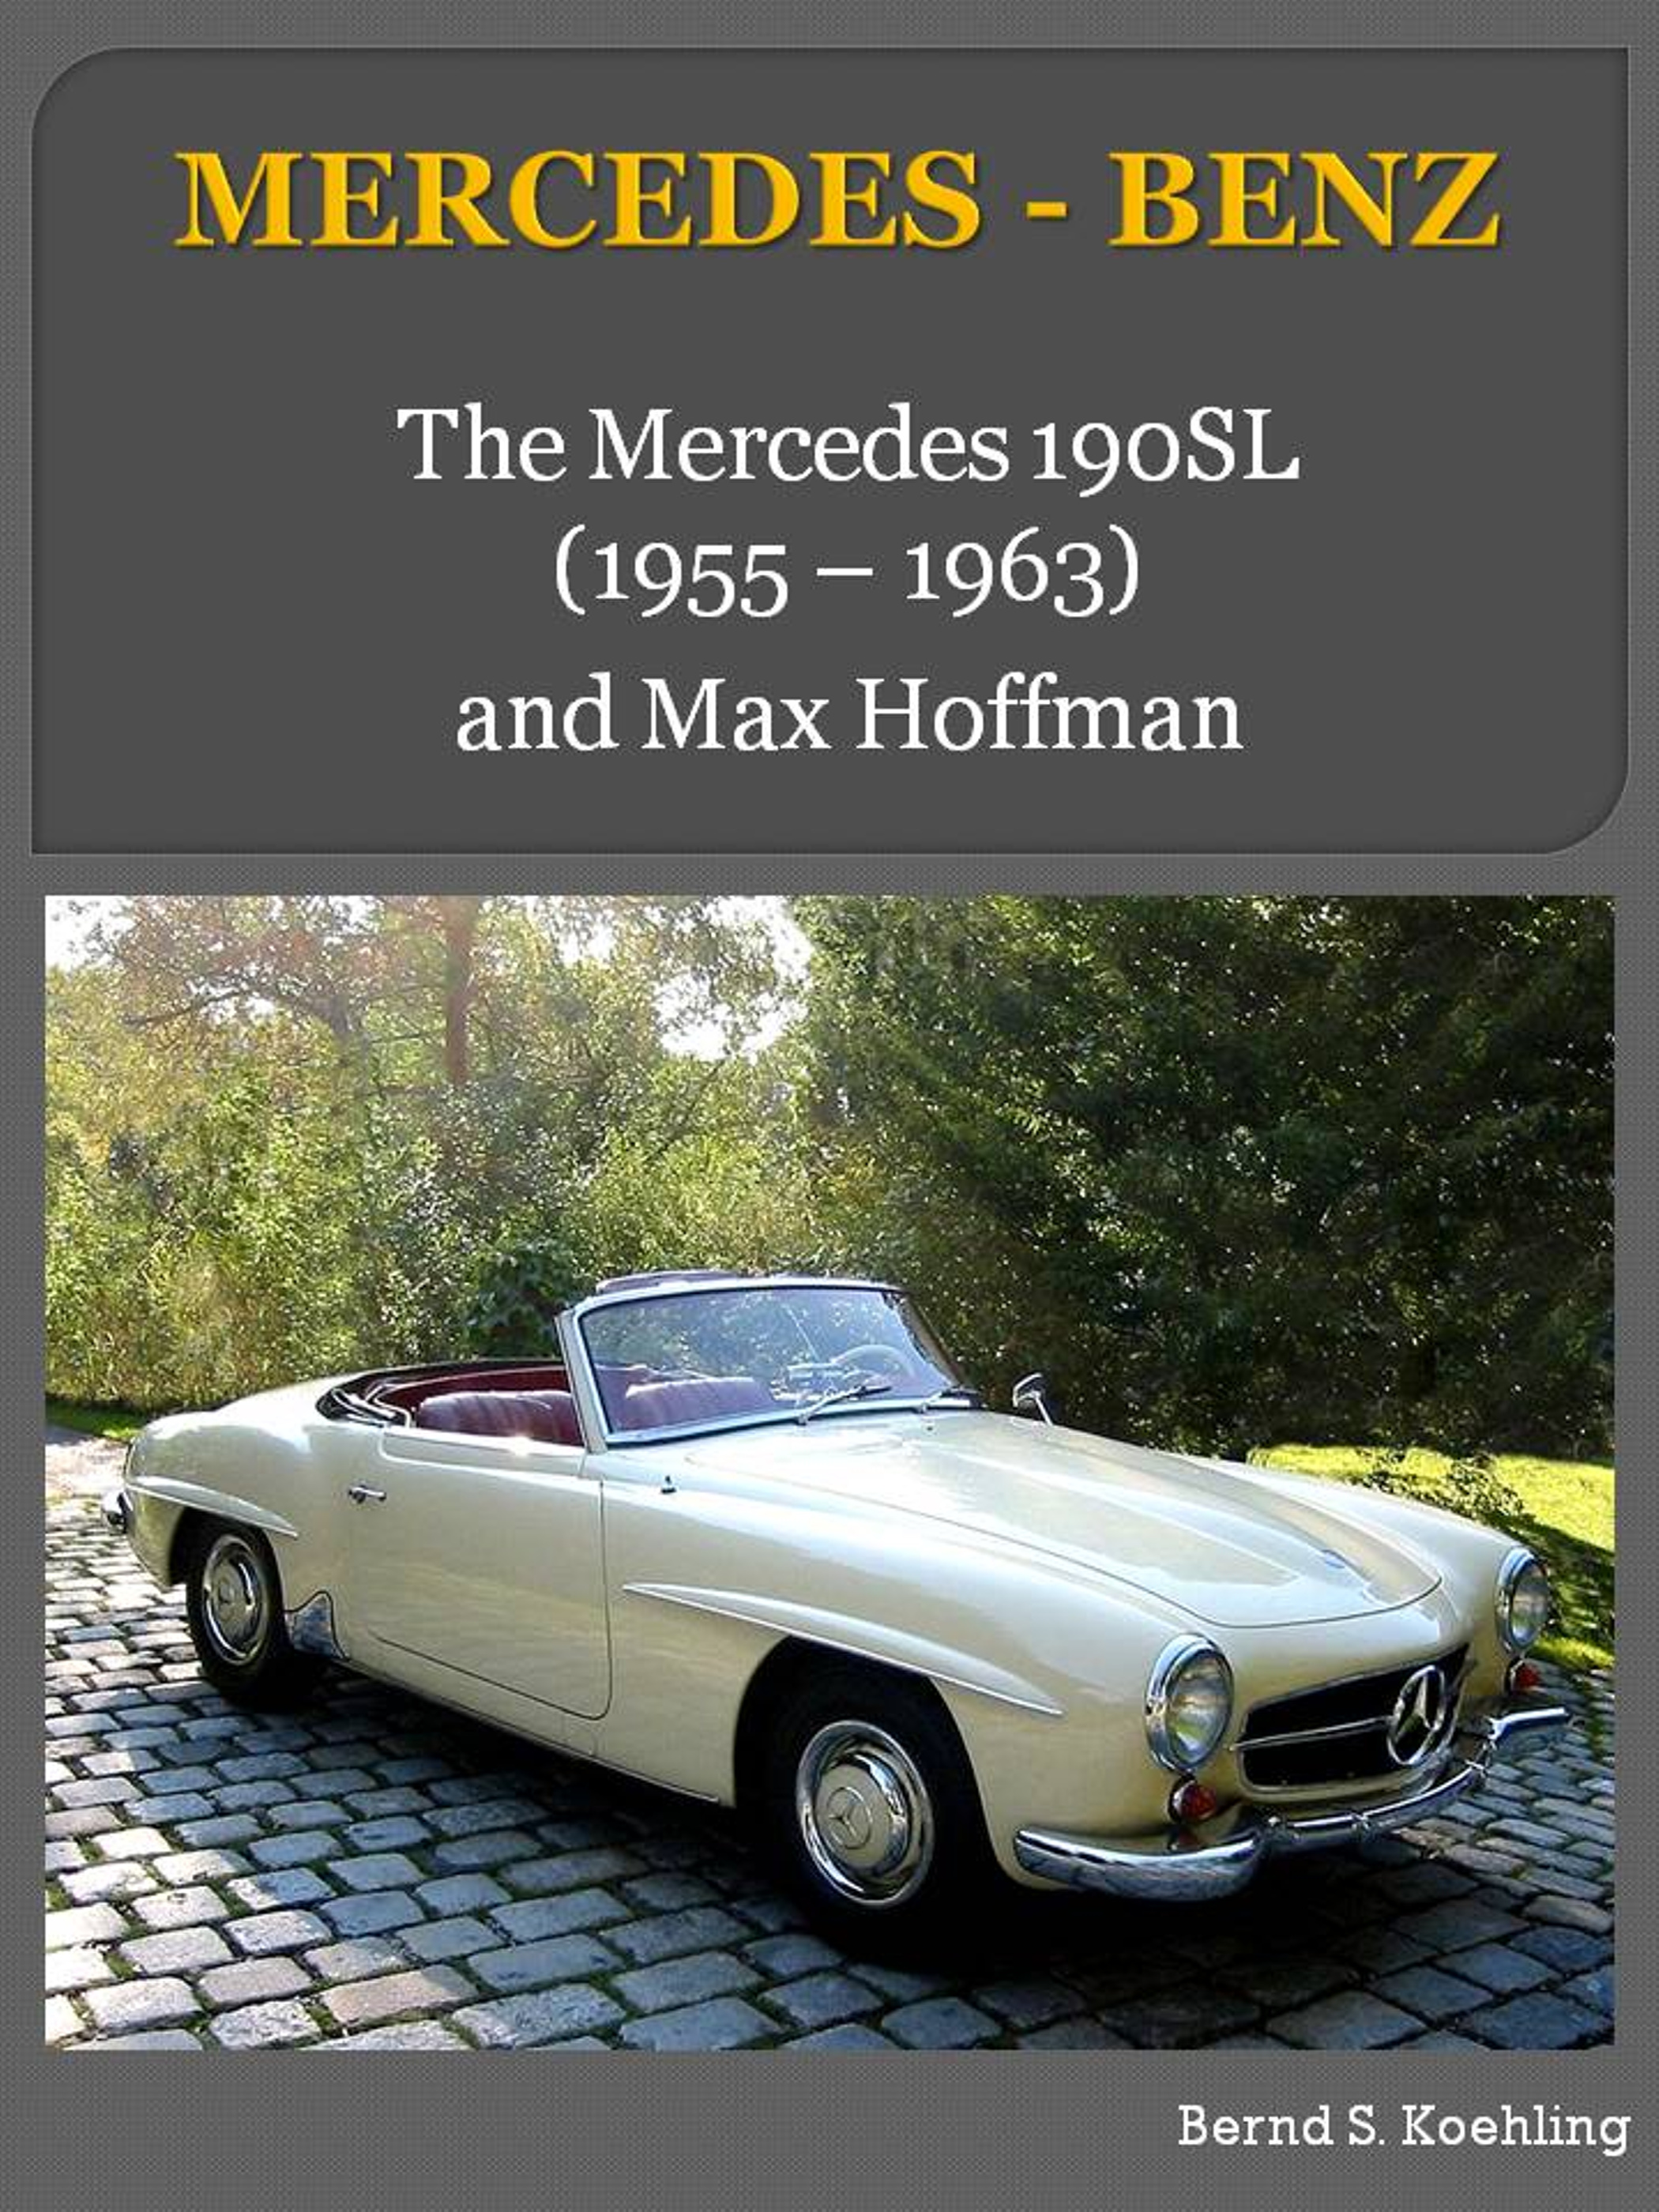 122 bernd s koehling books found mercedes benz the for Mercedes benz books